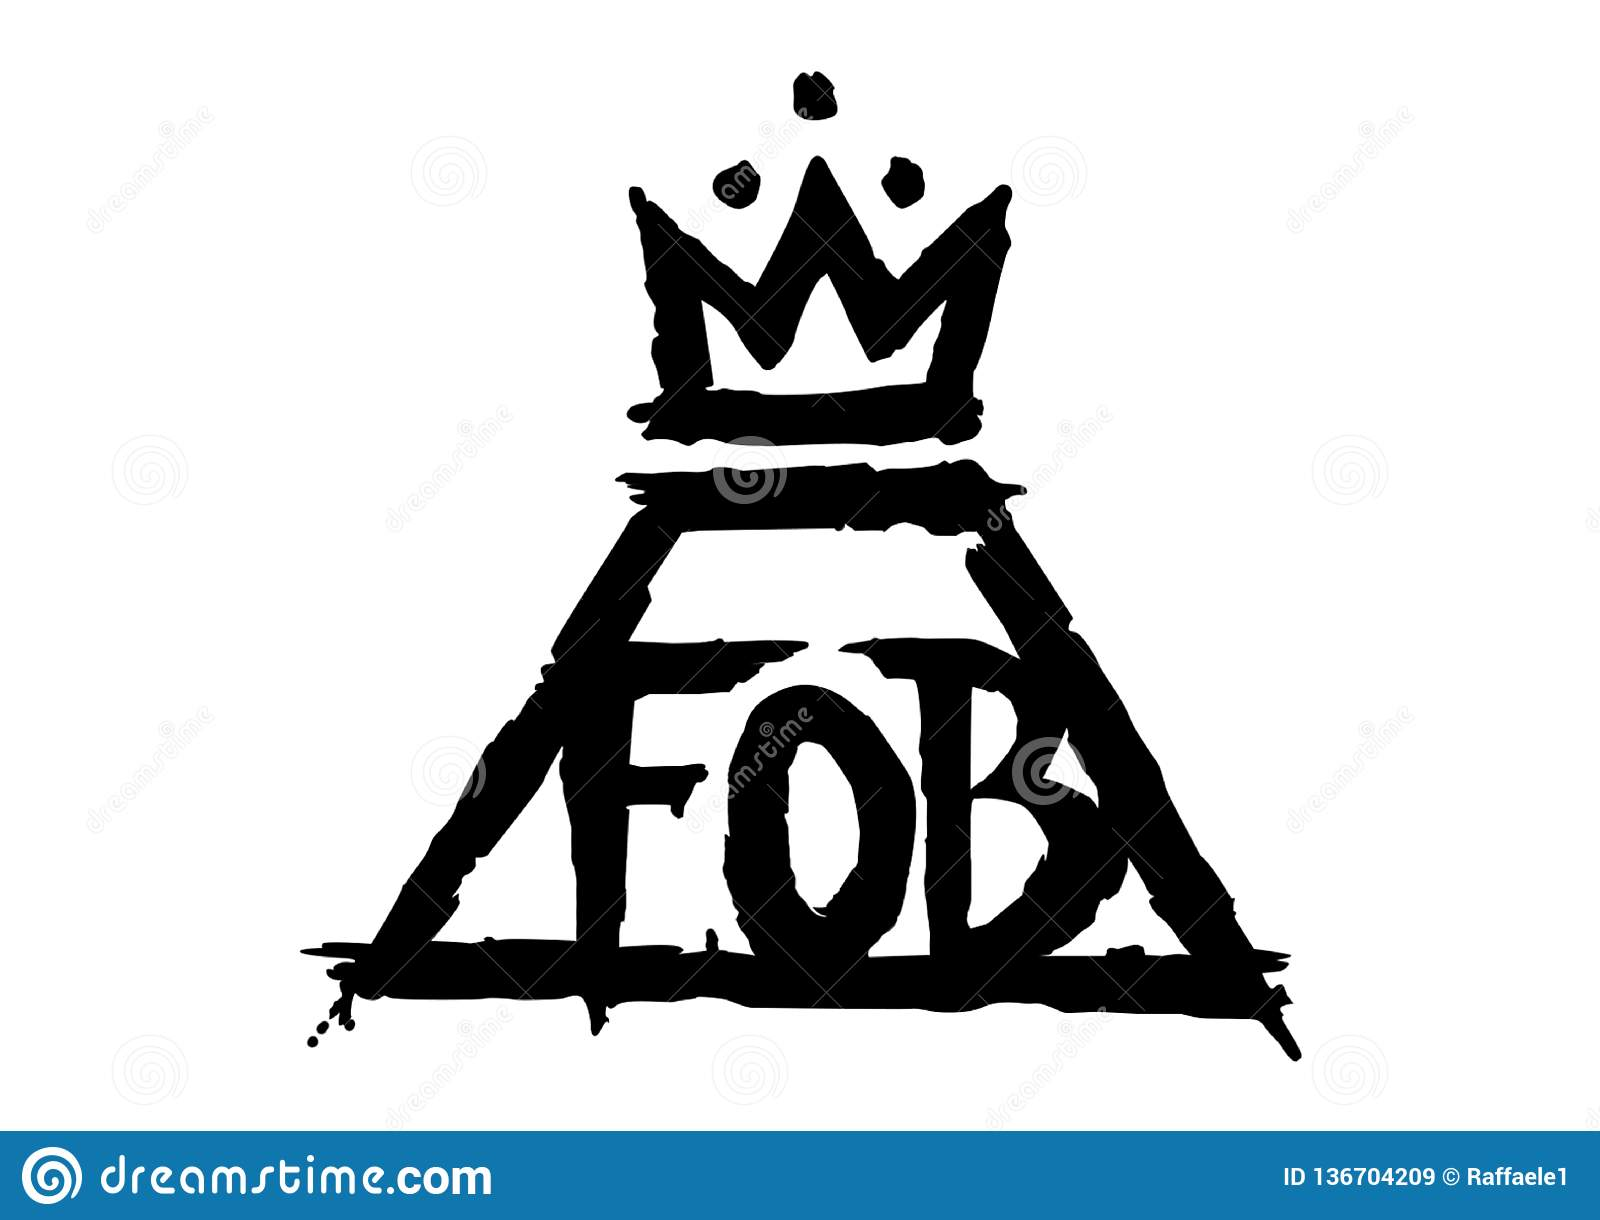 Logotipo de Fall Out Boy